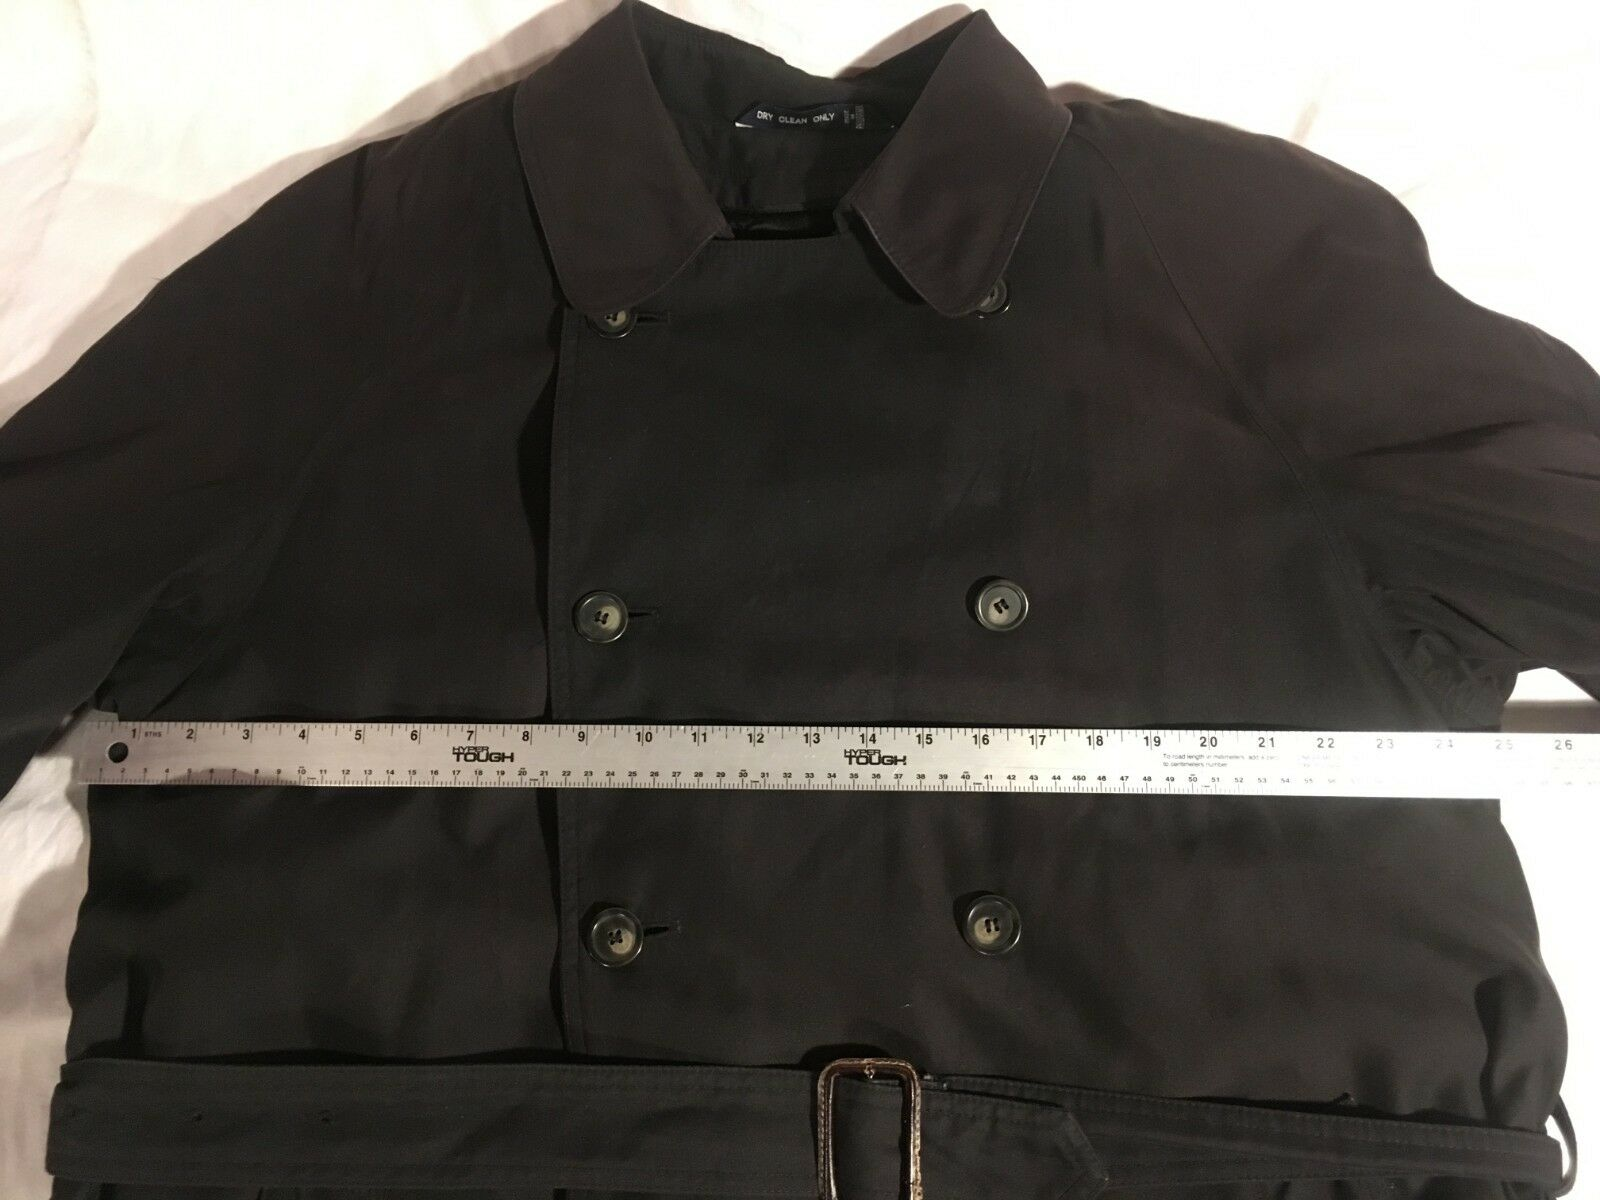 RALPH LAUREN RALPH 42 LONG BLACK FIVE BUTTON DOUBLE BREASTED TRENCH COAT Ralph Ralph Lauren Does Not Apply